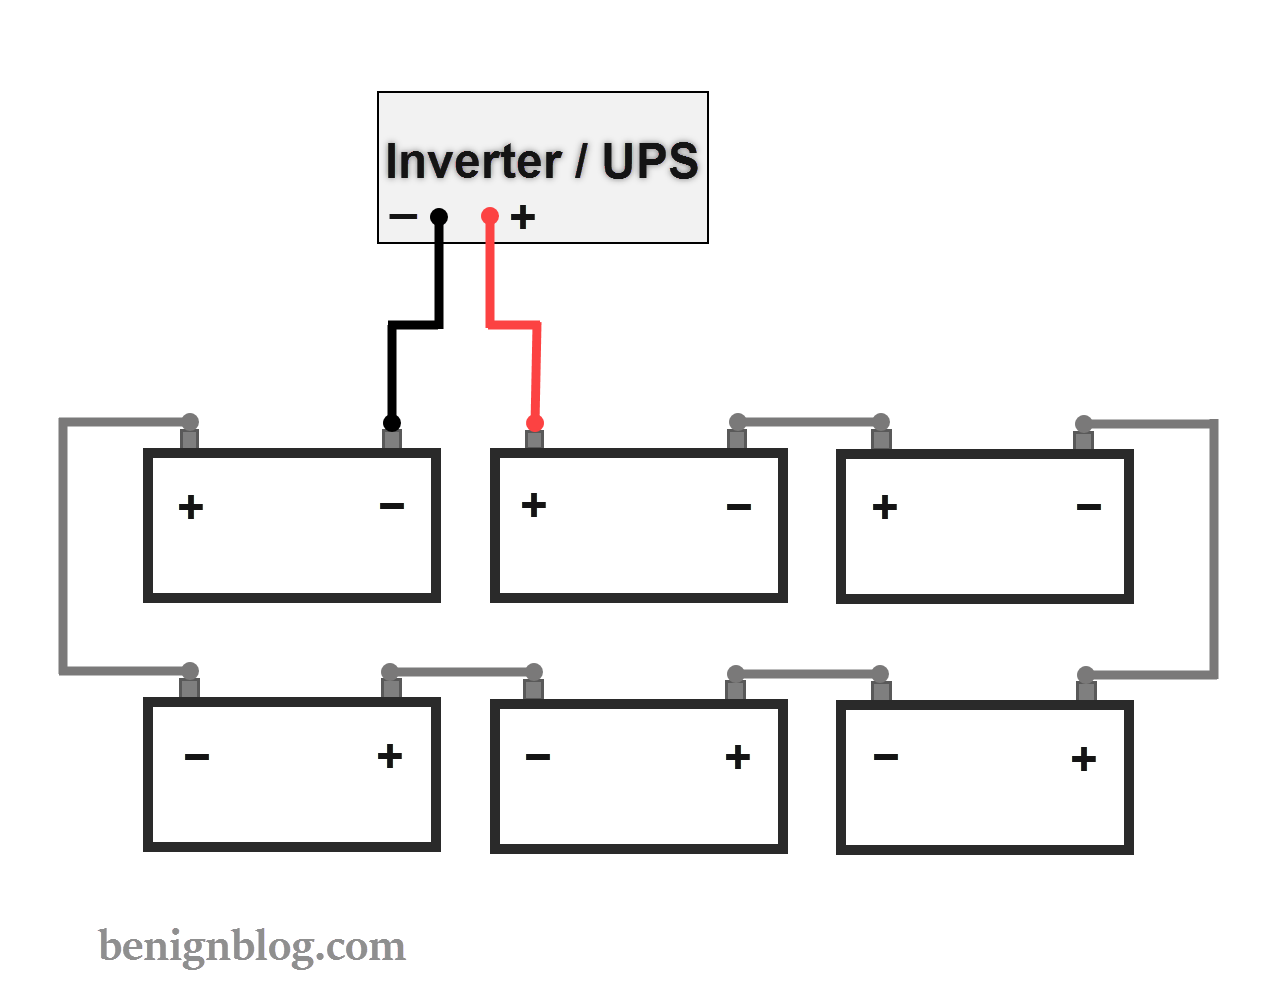 medium resolution of how to connect batteries in series with power inverter or ups wiring diagram for 2 12 volt batteries in series wiring diagram for batteries in series